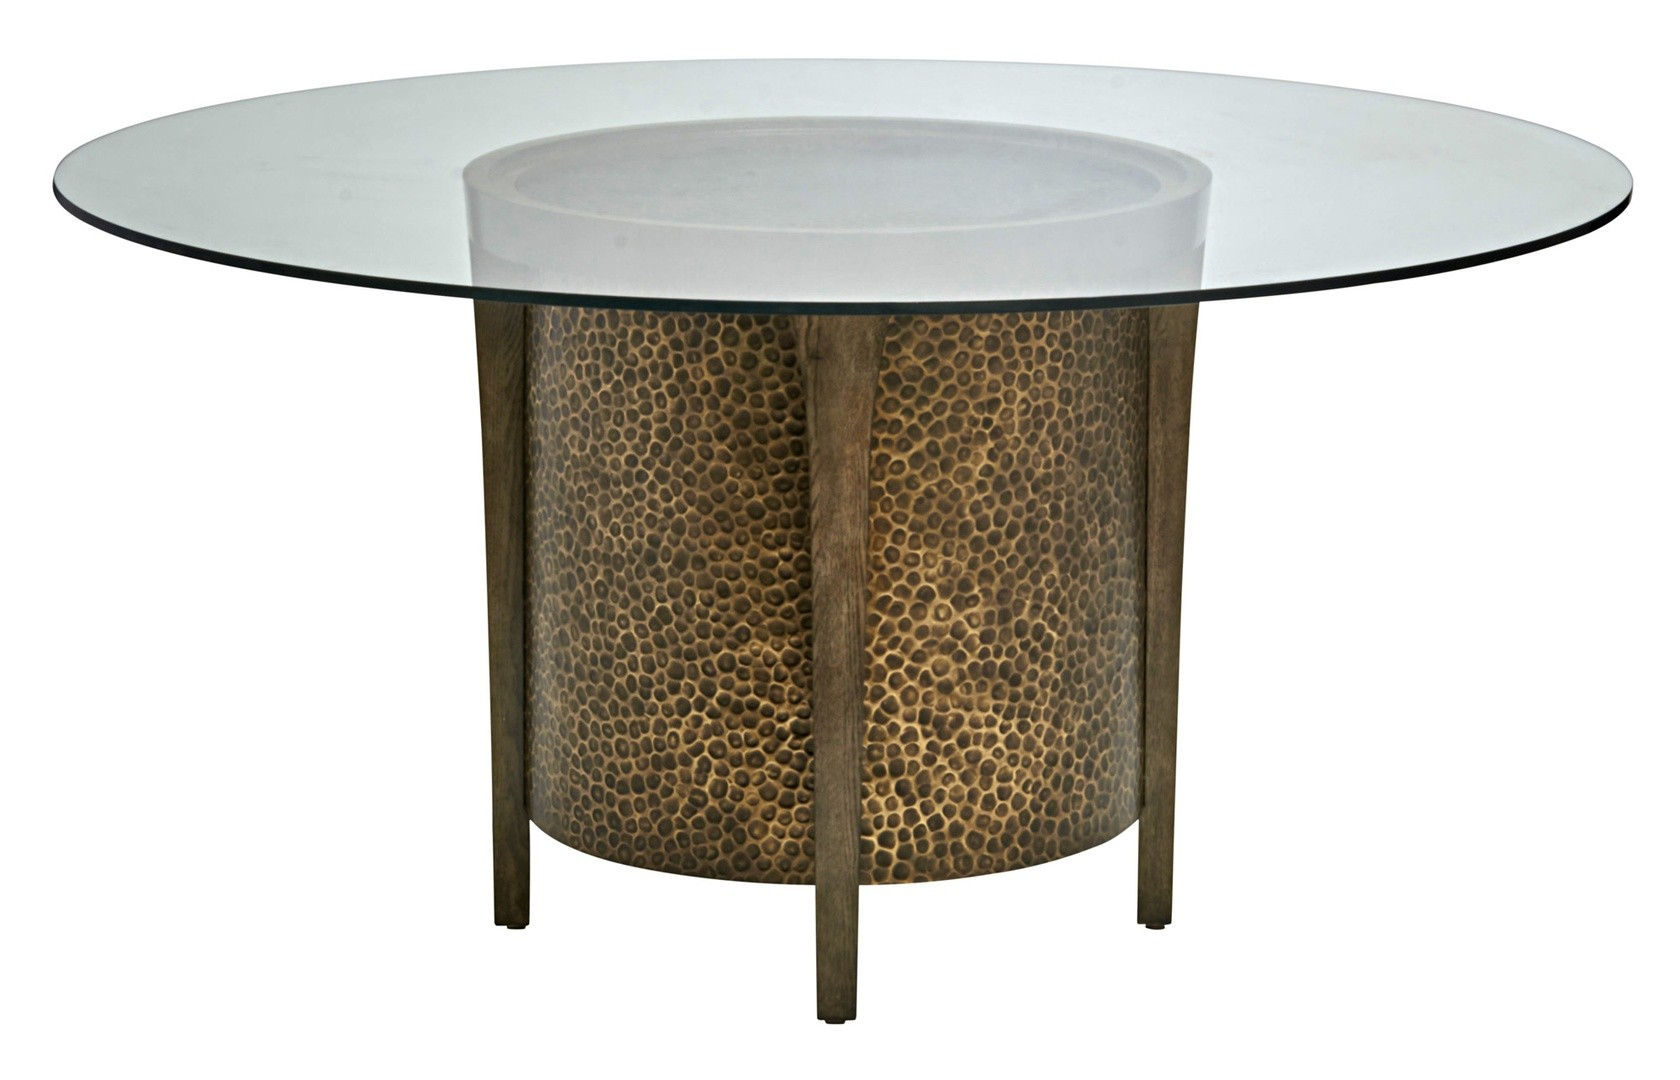 Glass Top Round Dining Table In Quarter Sawn Oak And Metallic Accents